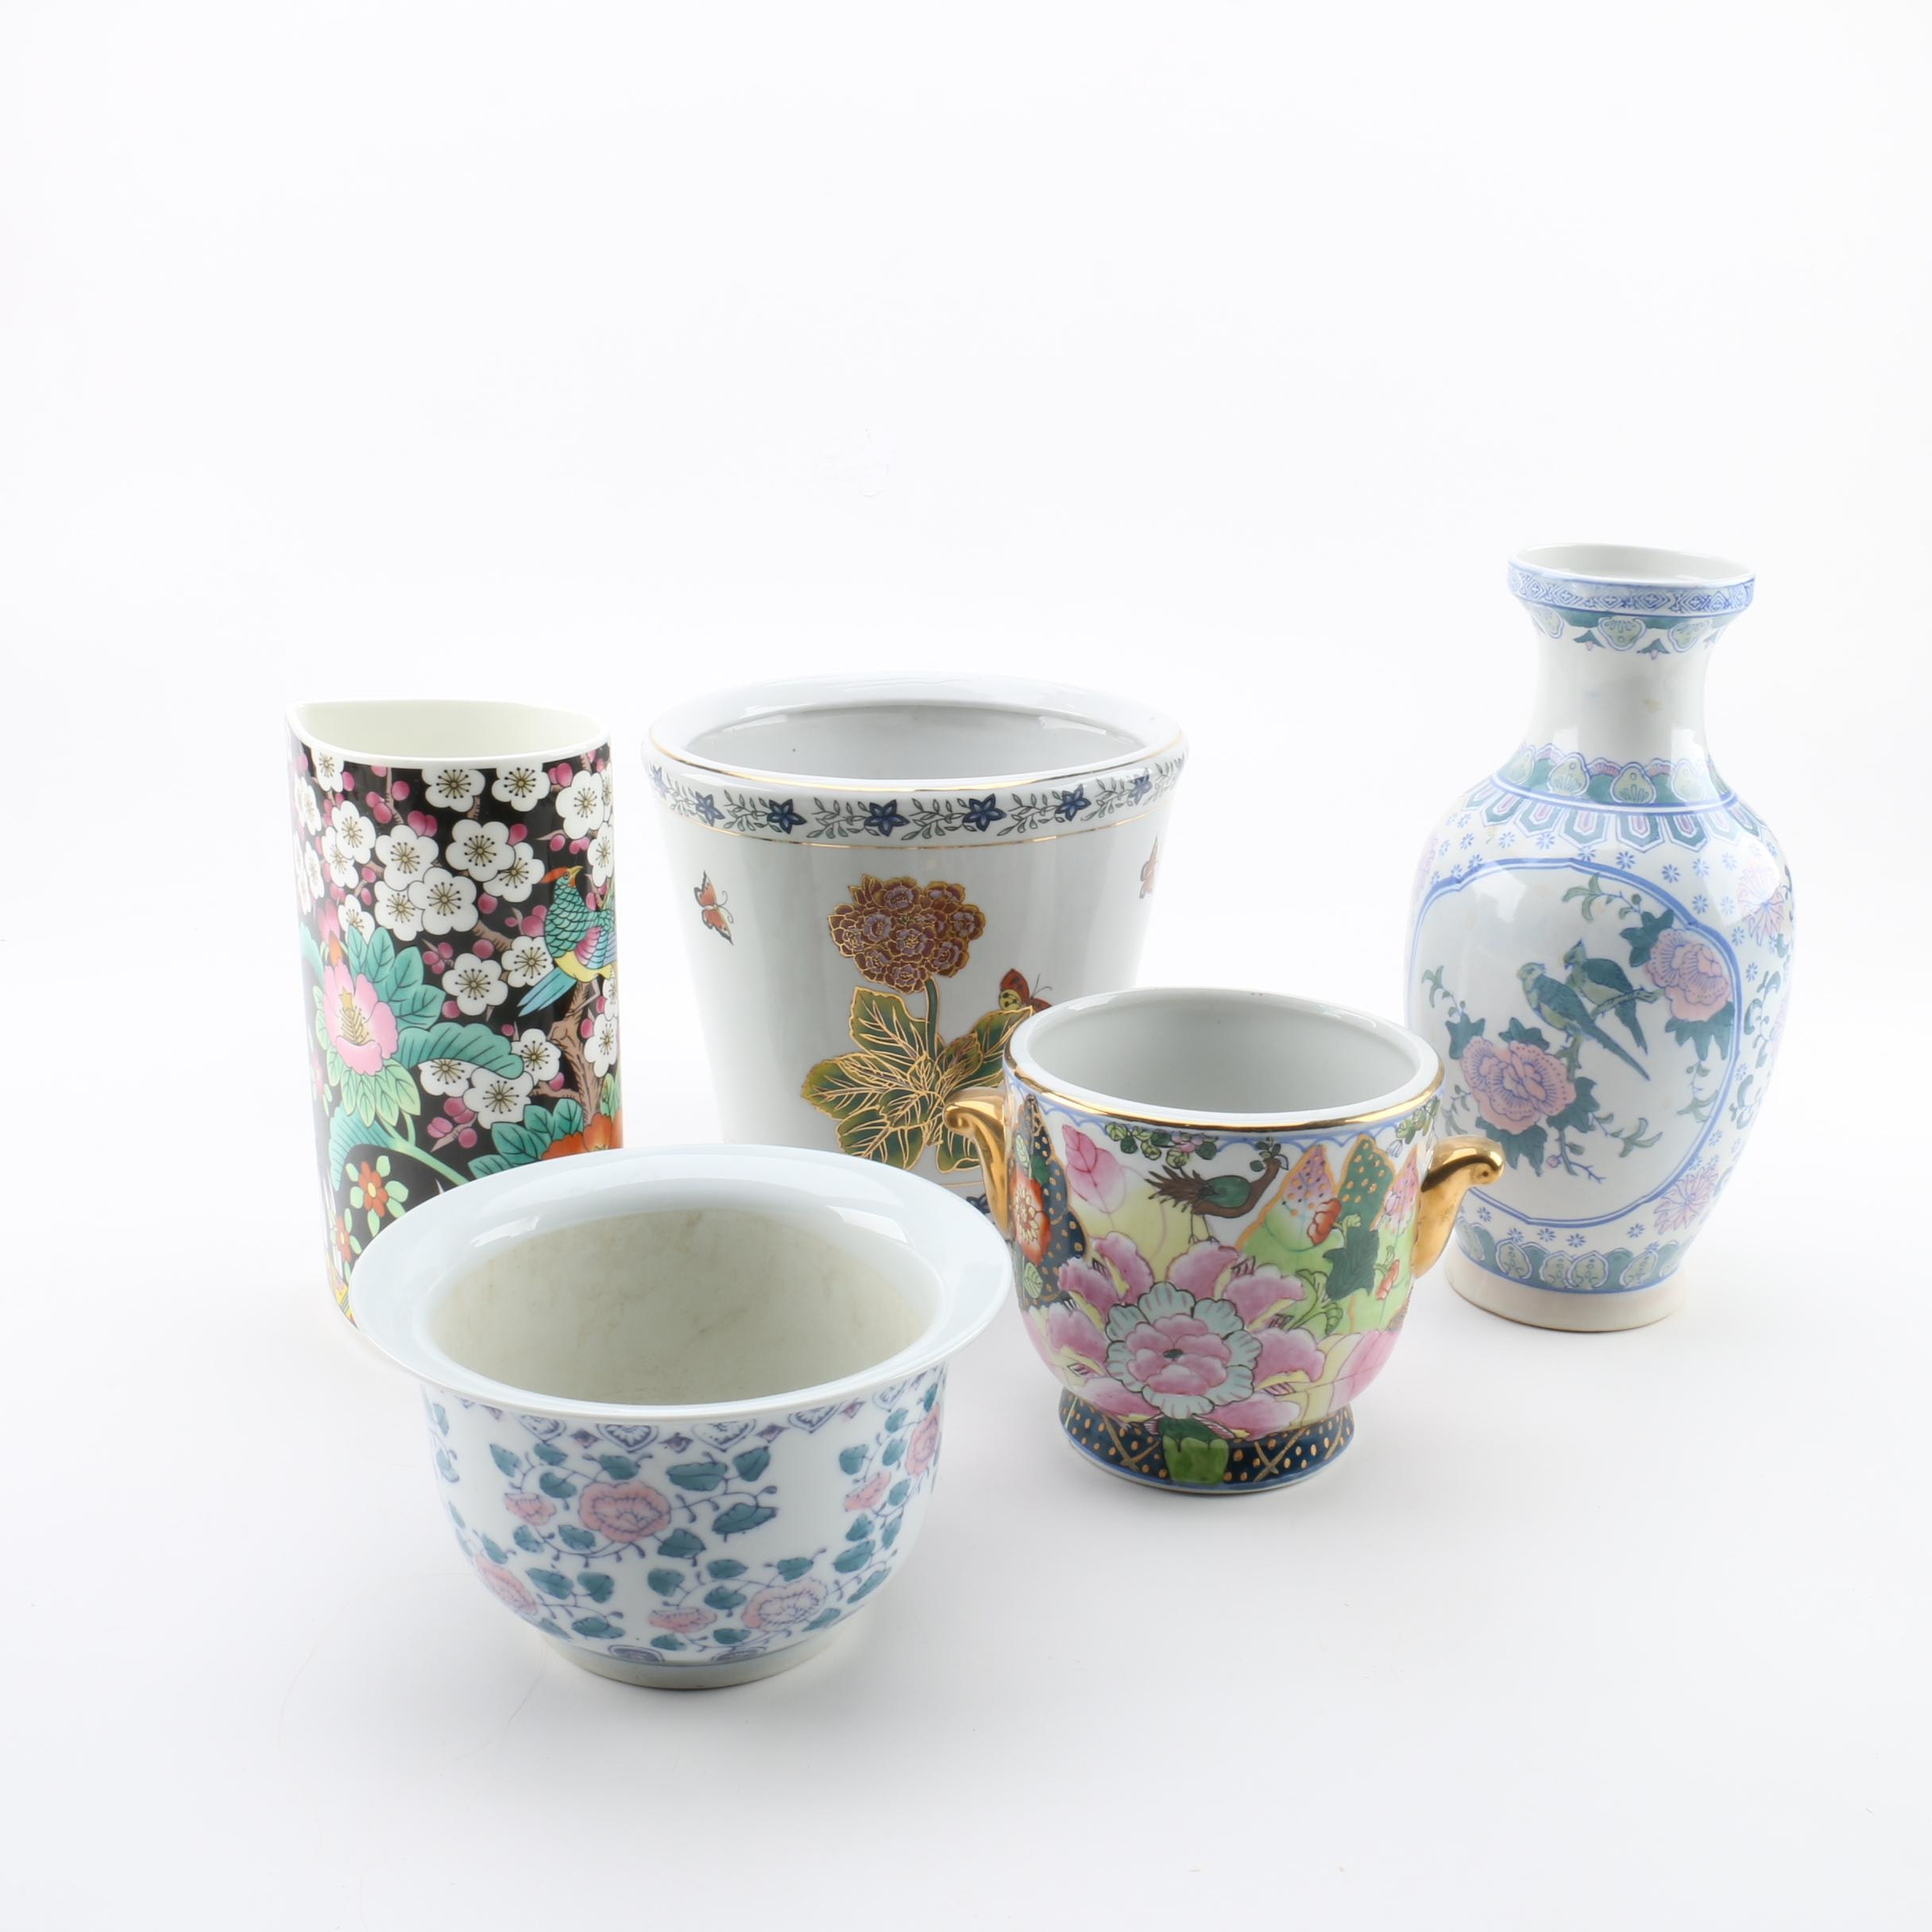 Mikasa, Andrea by Sadek and Assorted Planters